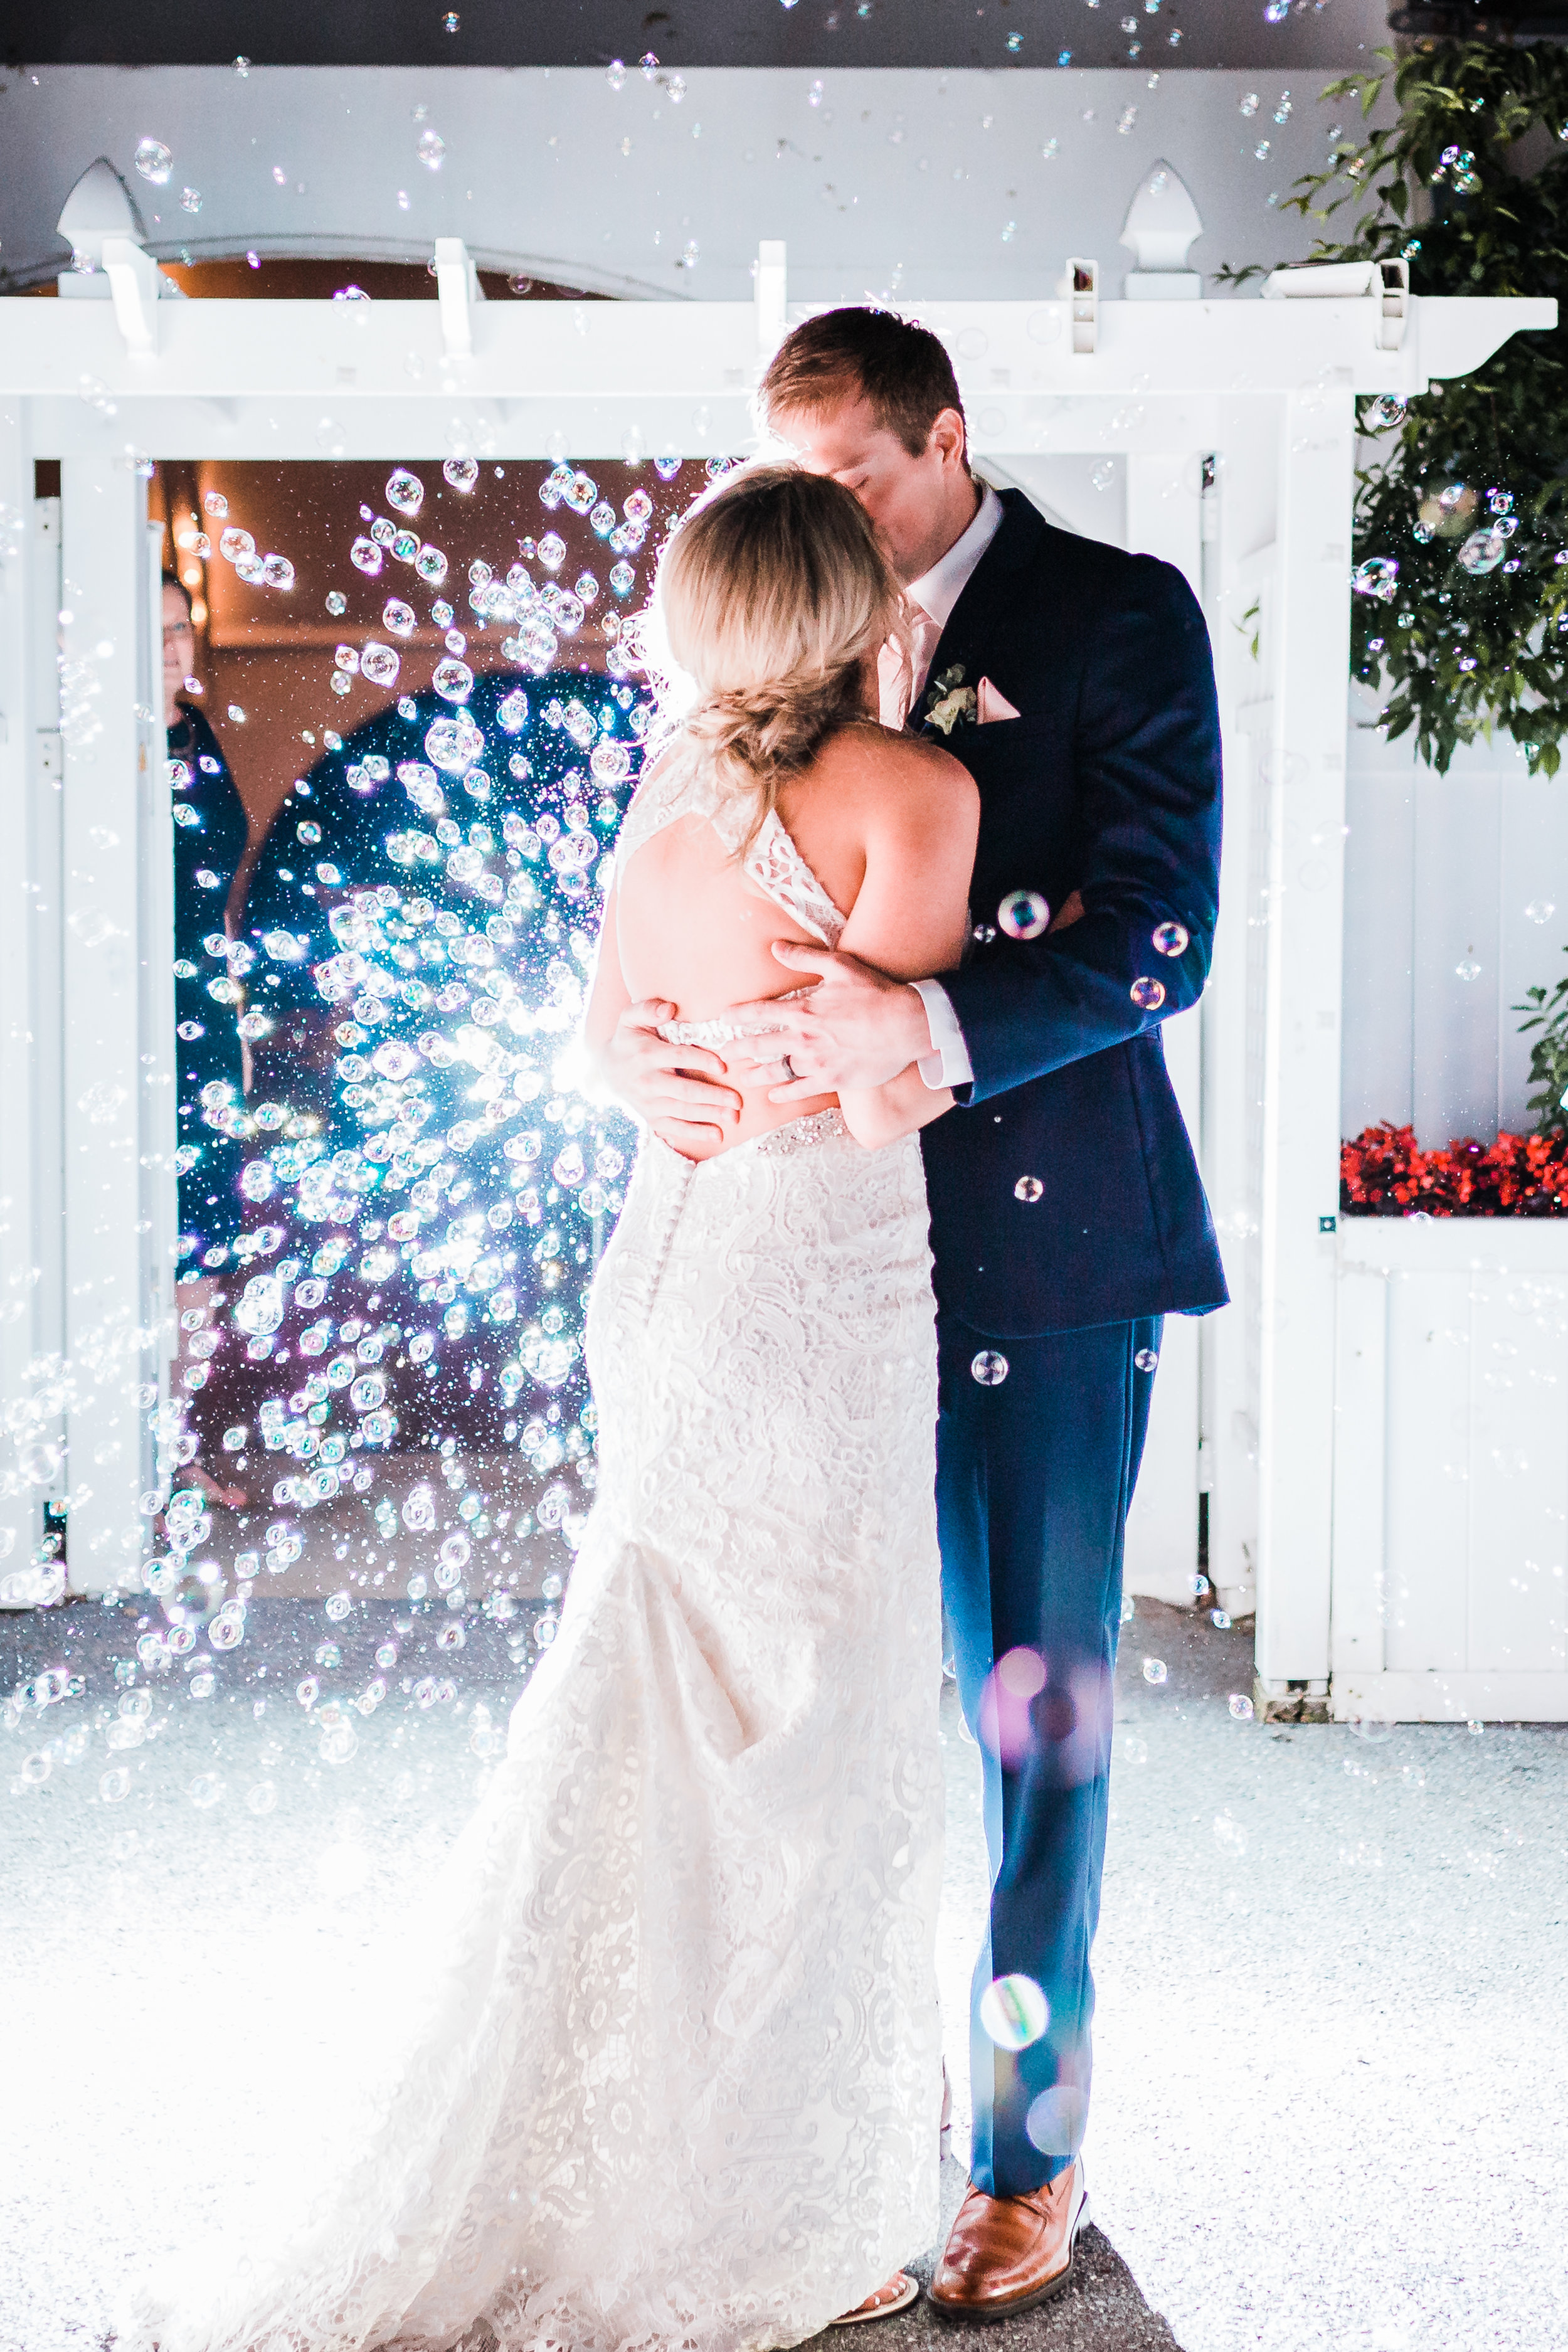 night time bubble exit at pasadena maryland wedding venue - top maryland wedding photographer - husband and wife team